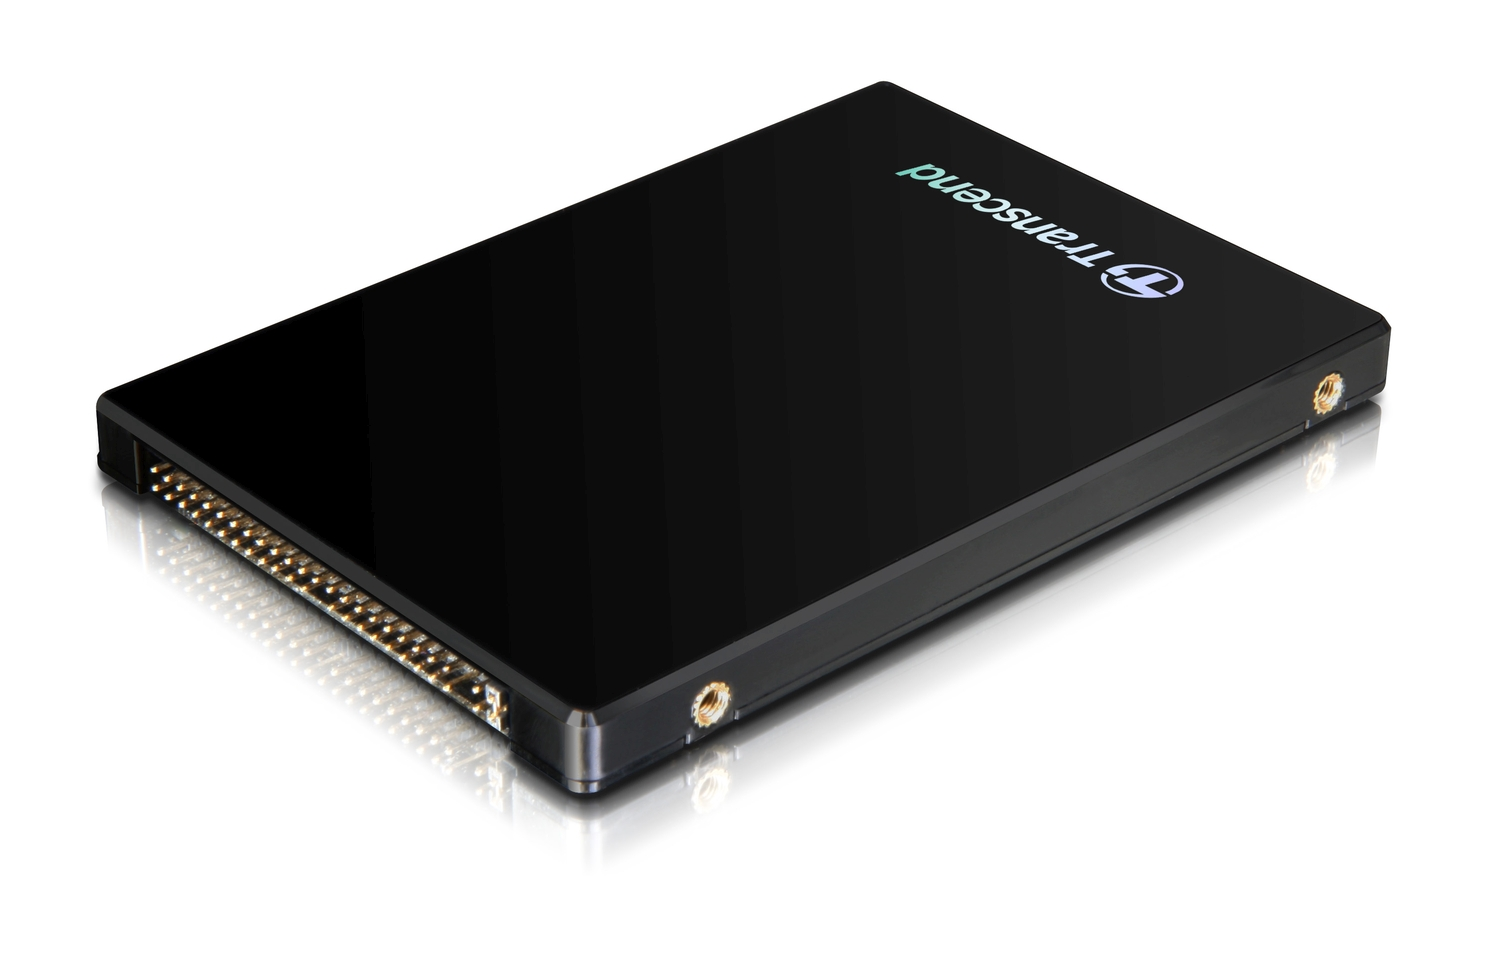 "Transcend SSD330 64GB SSD disk 2.5"" IDE PATA, MLC - TS64GPSD330"